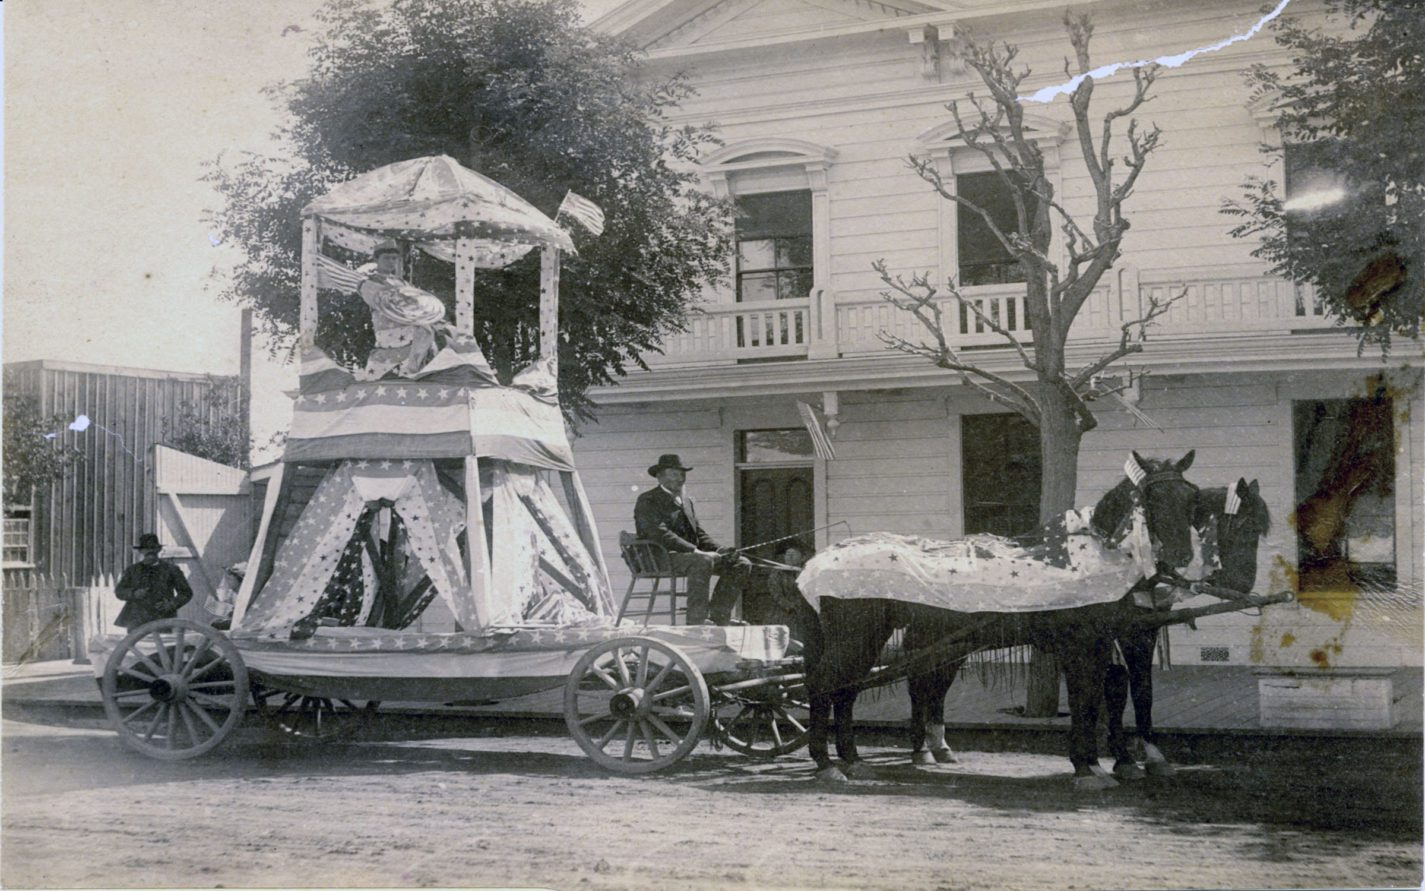 Young woman with a crown on July Fourth Float pulled by horses in front of the Tremont House on Main Street in Redwood City circa 1880s